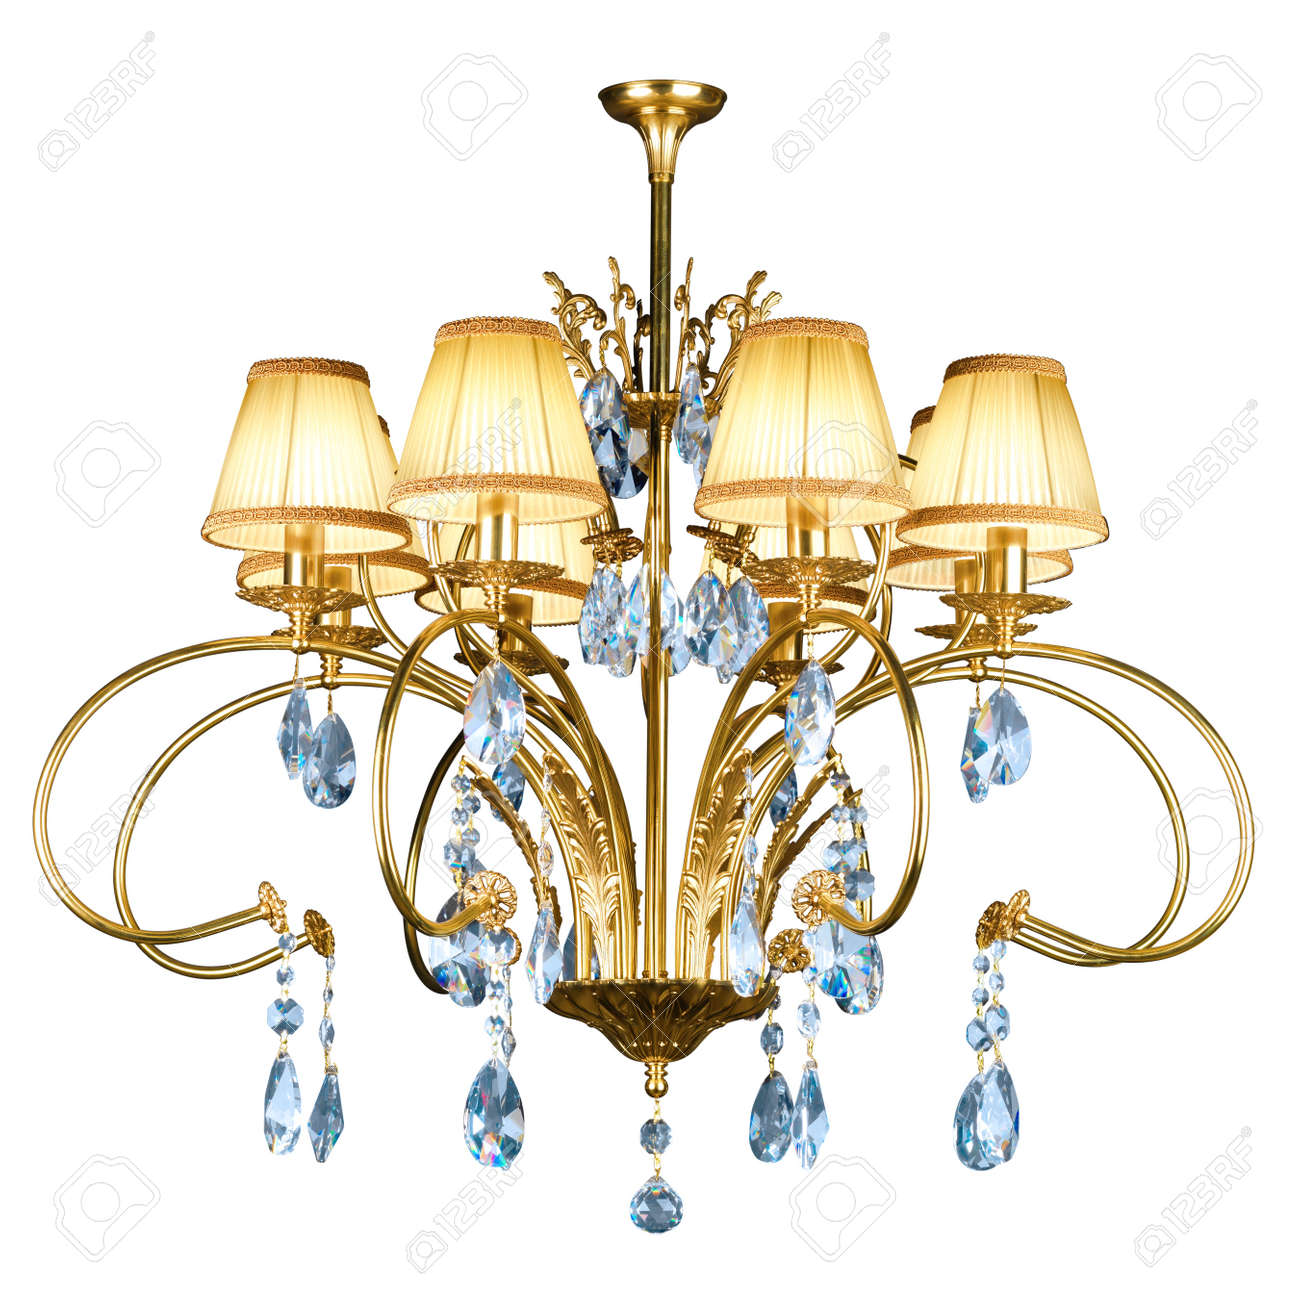 Vintage chandelier isolated on white background with clipping path Stock Photo - 14945864